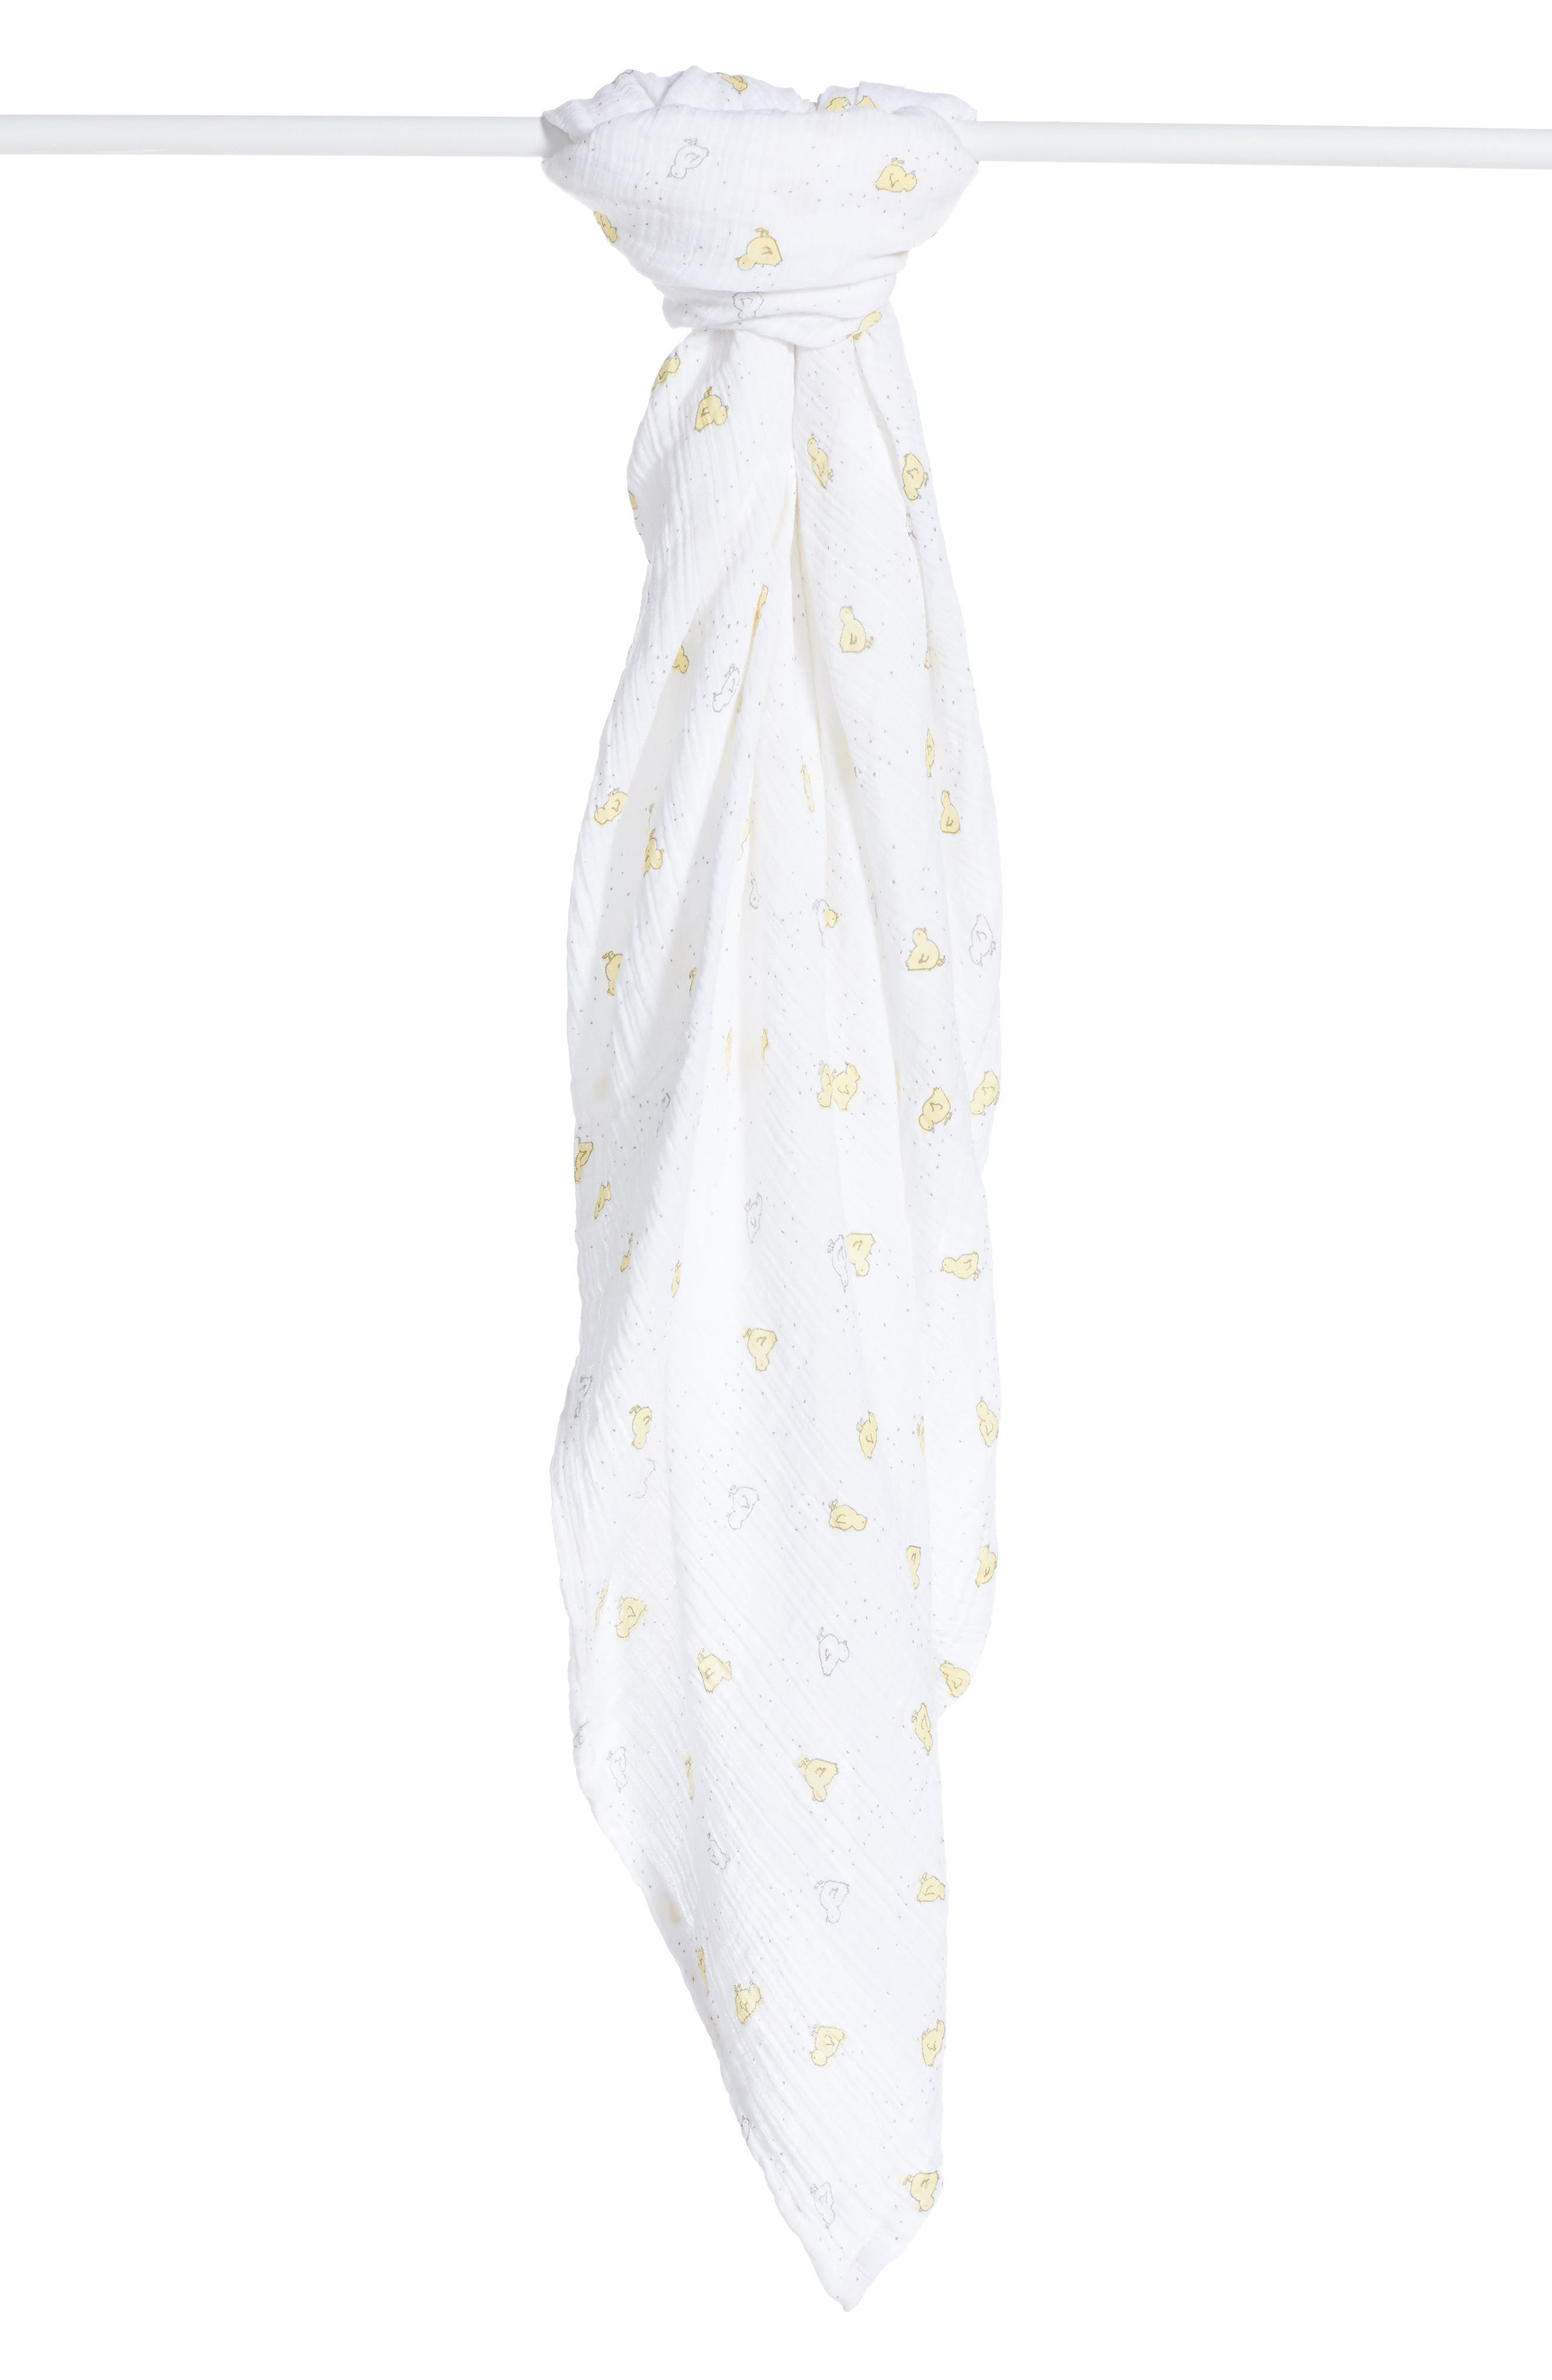 Baby Chick Swaddle Blanket,                             Alternate thumbnail 2, color,                             100